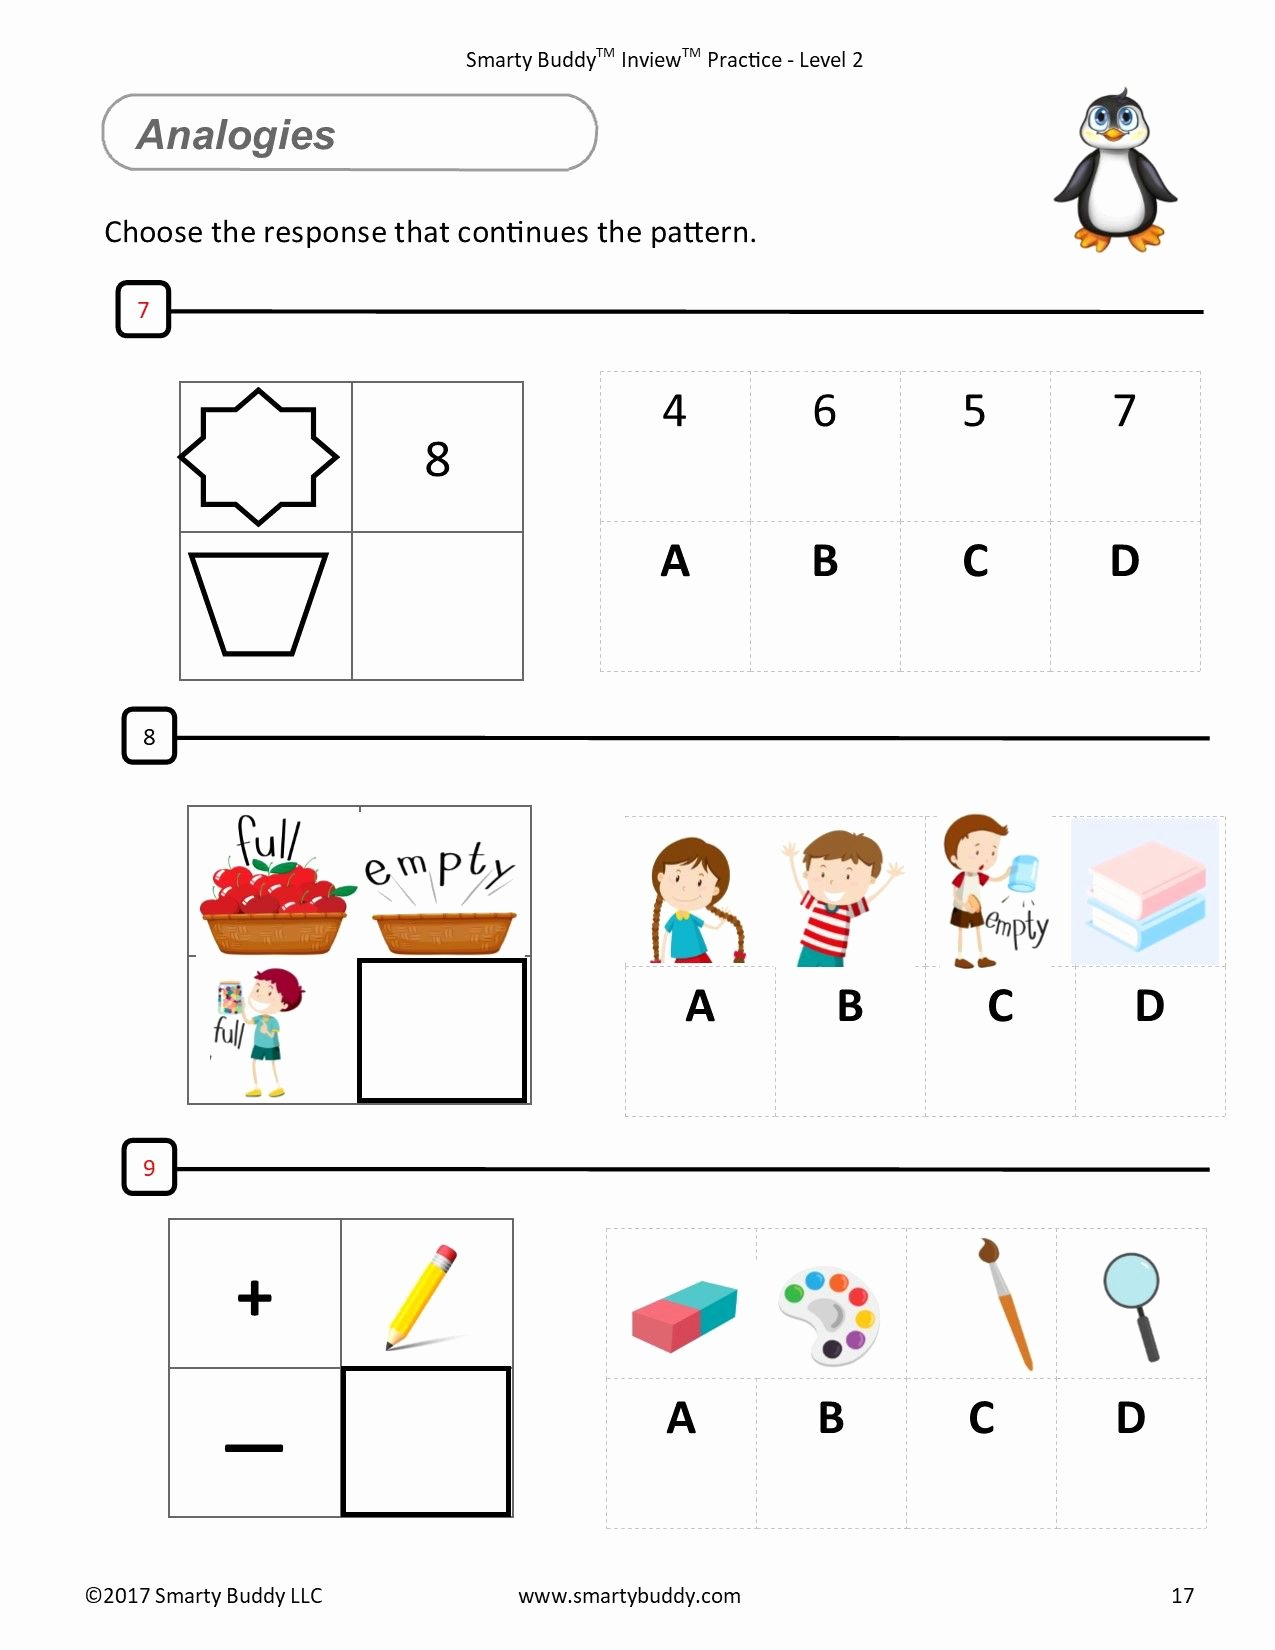 Association Worksheets for Preschoolers Best Of Smarty Buddy Logic Gifted and Talented Kids Worksheets